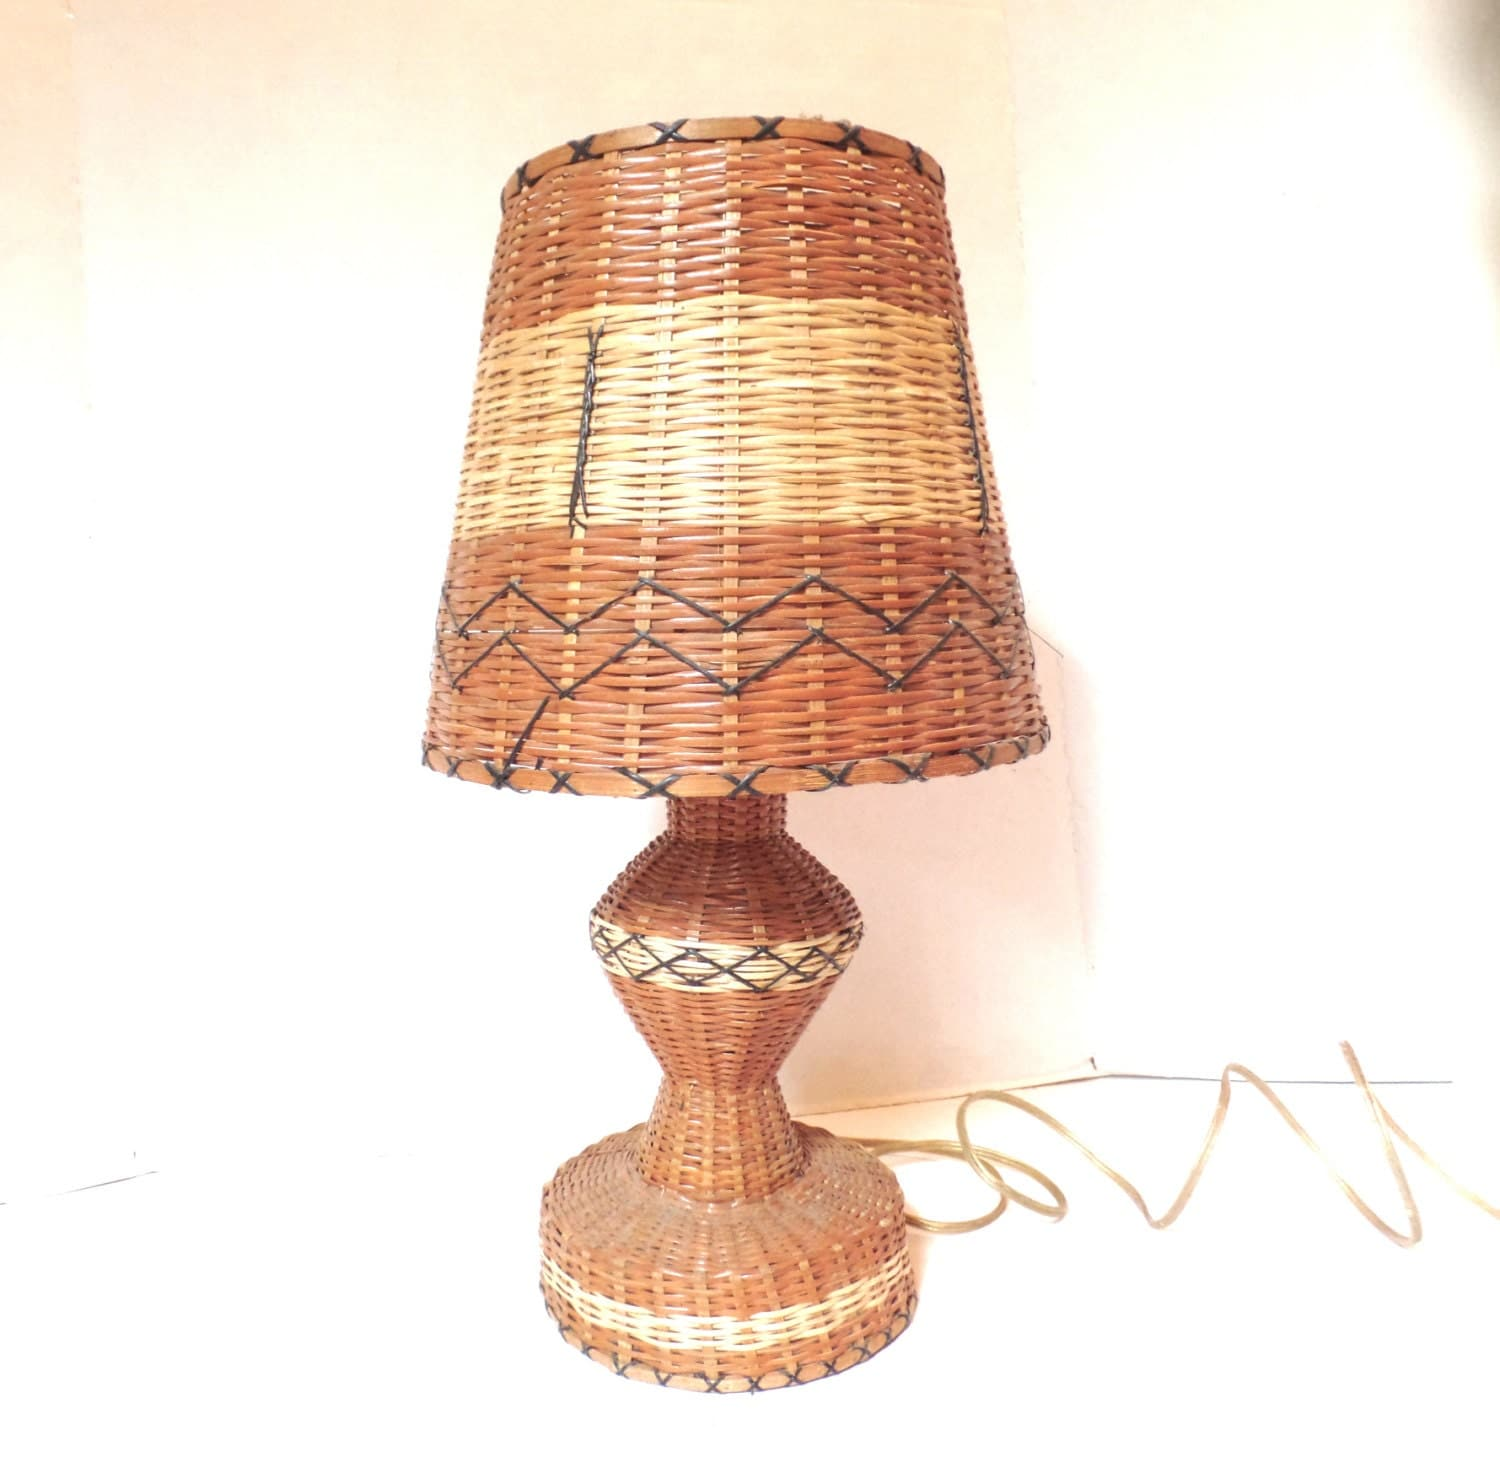 Vintage Wicker Table Lamp 70s Woven Rattan Lamp By